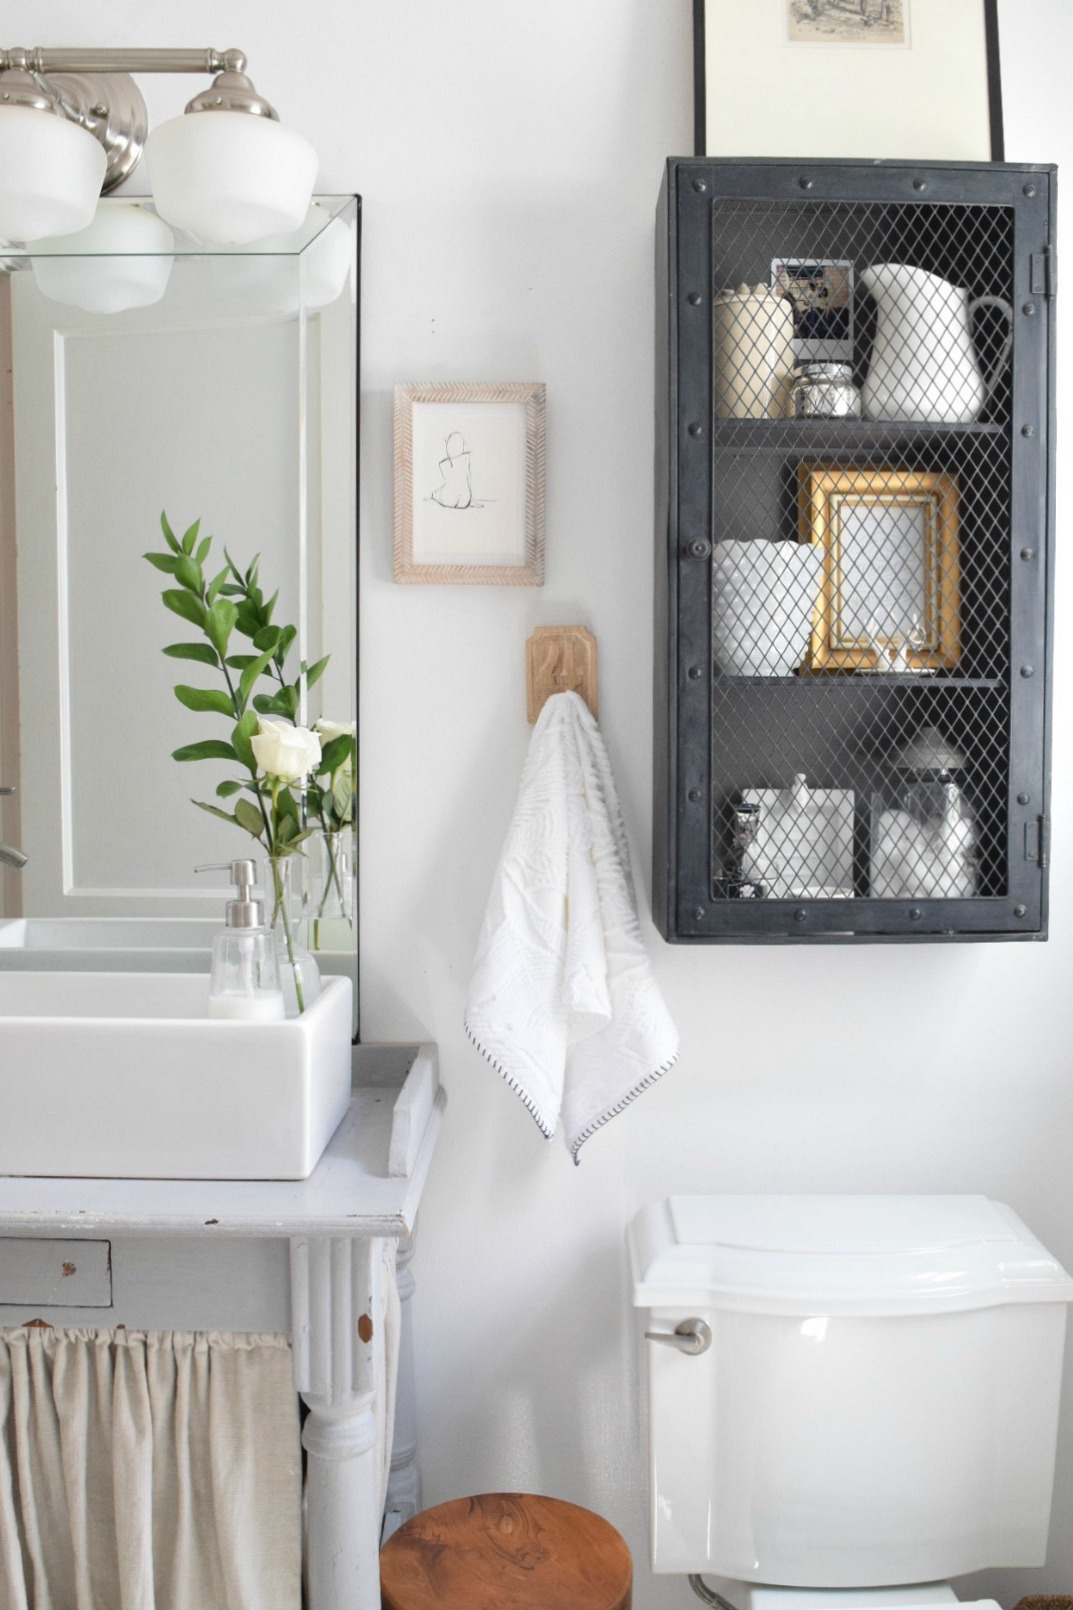 Small Bathroom Ideas- Storage in our Tiny Cape & Small Bathroom Ideas and Solutions in our Tiny Cape - Nesting With Grace